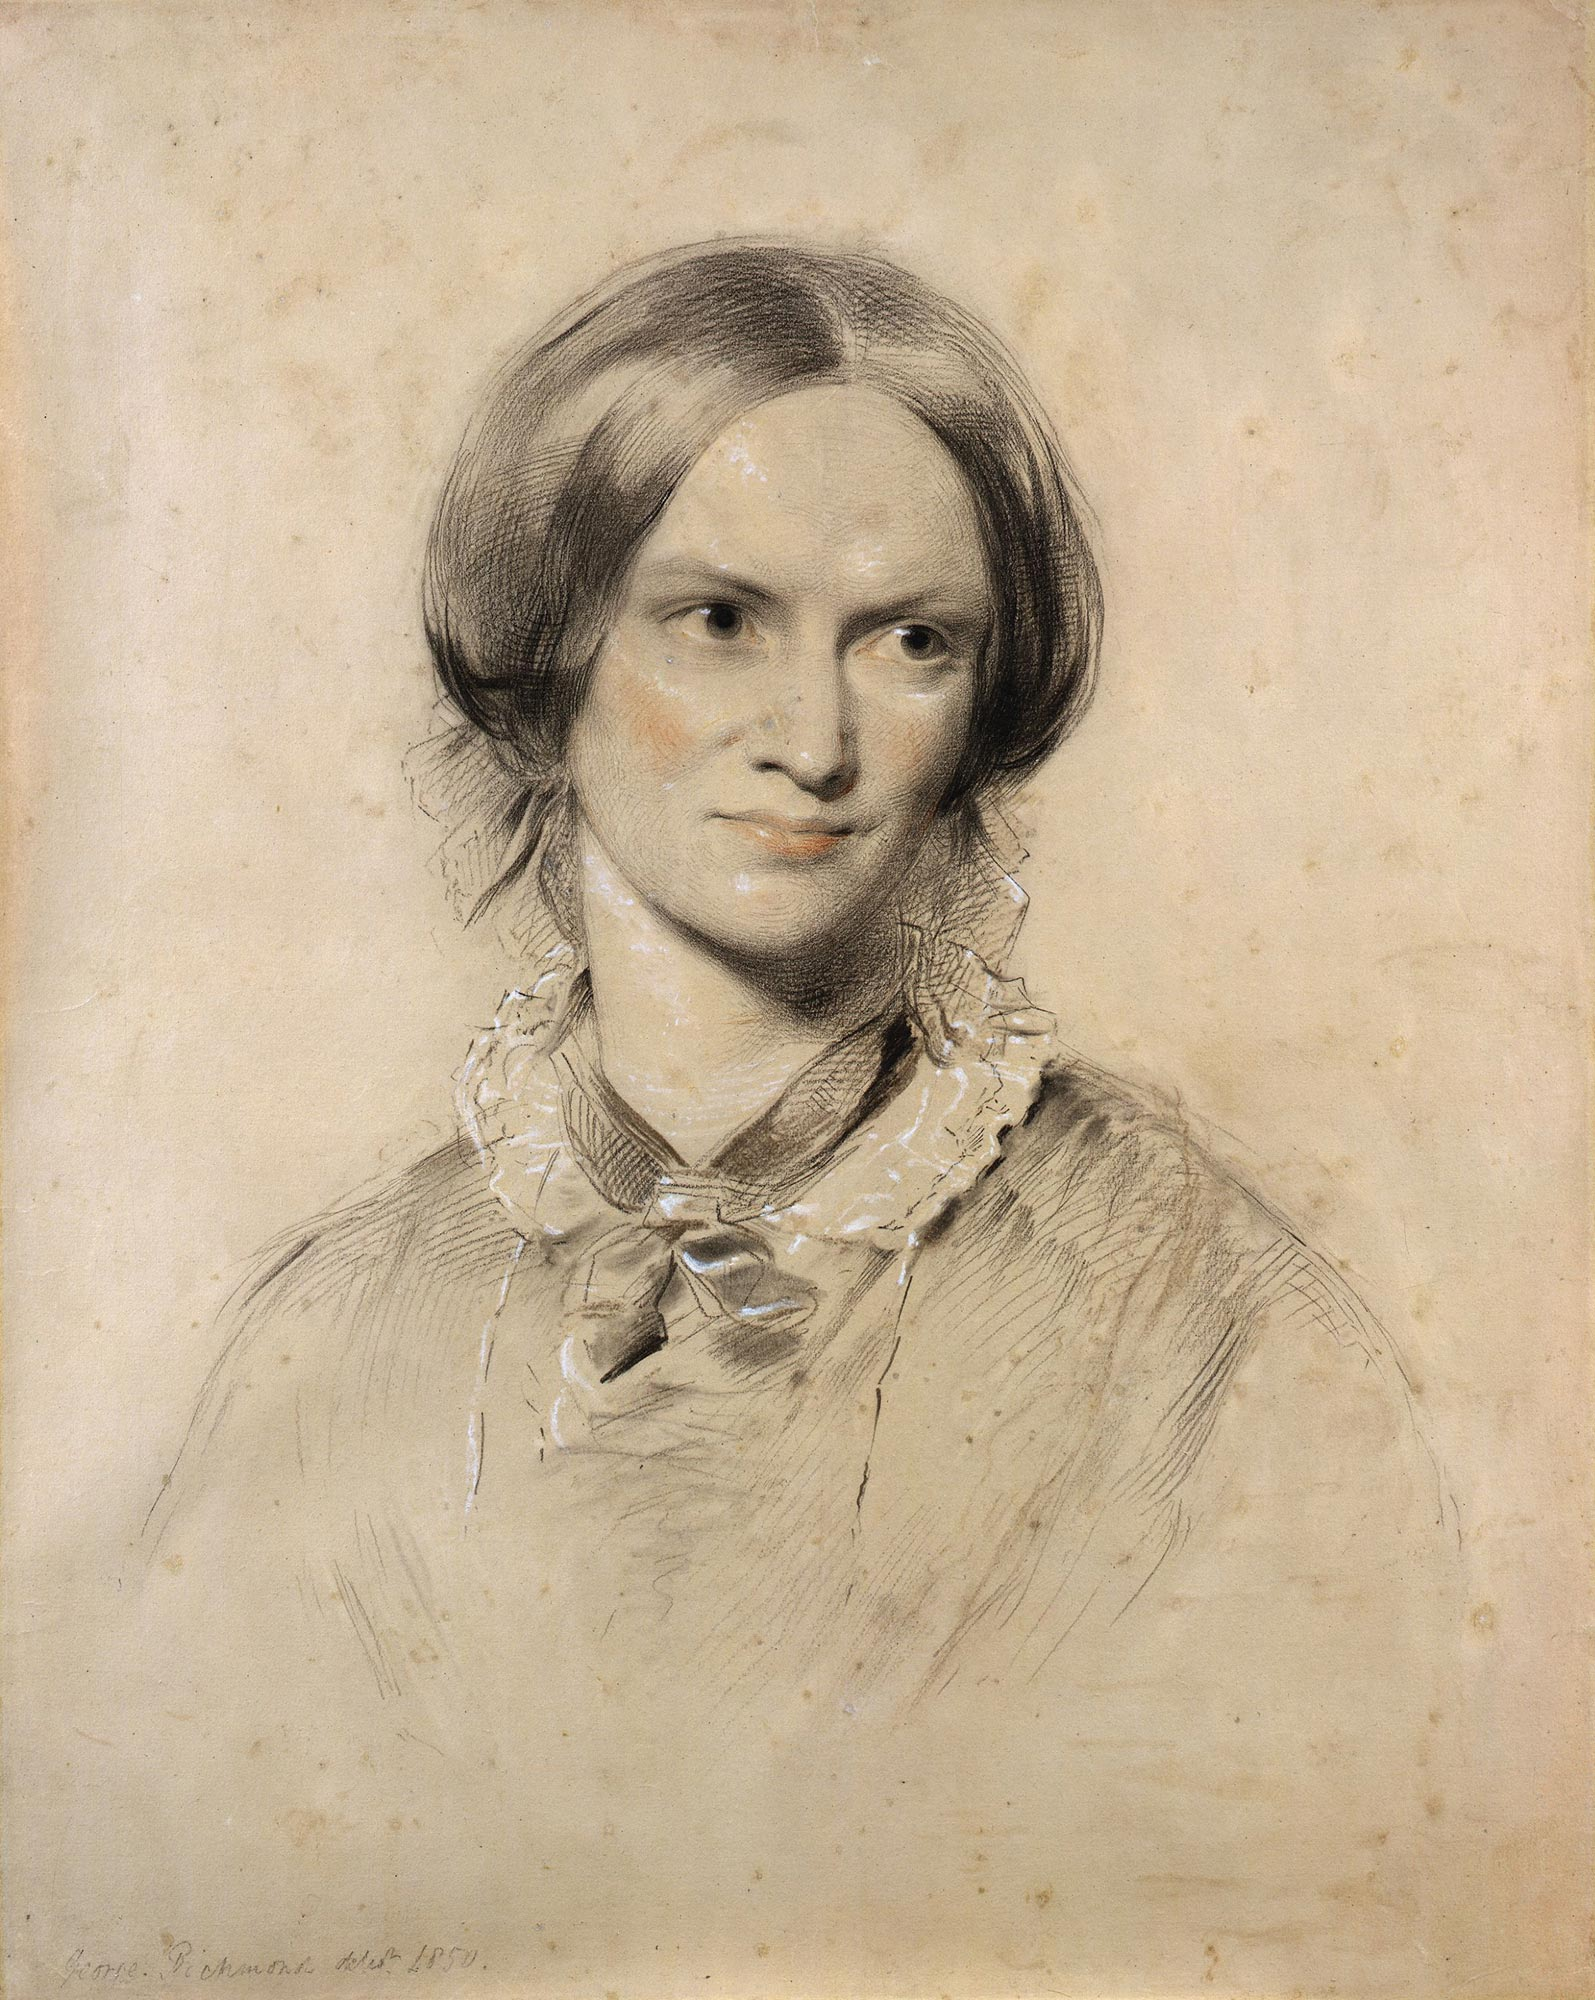 Charlotte Brontë, author of Jane Eyre. Painting by George Richmond © National Portrait Gallery, London.